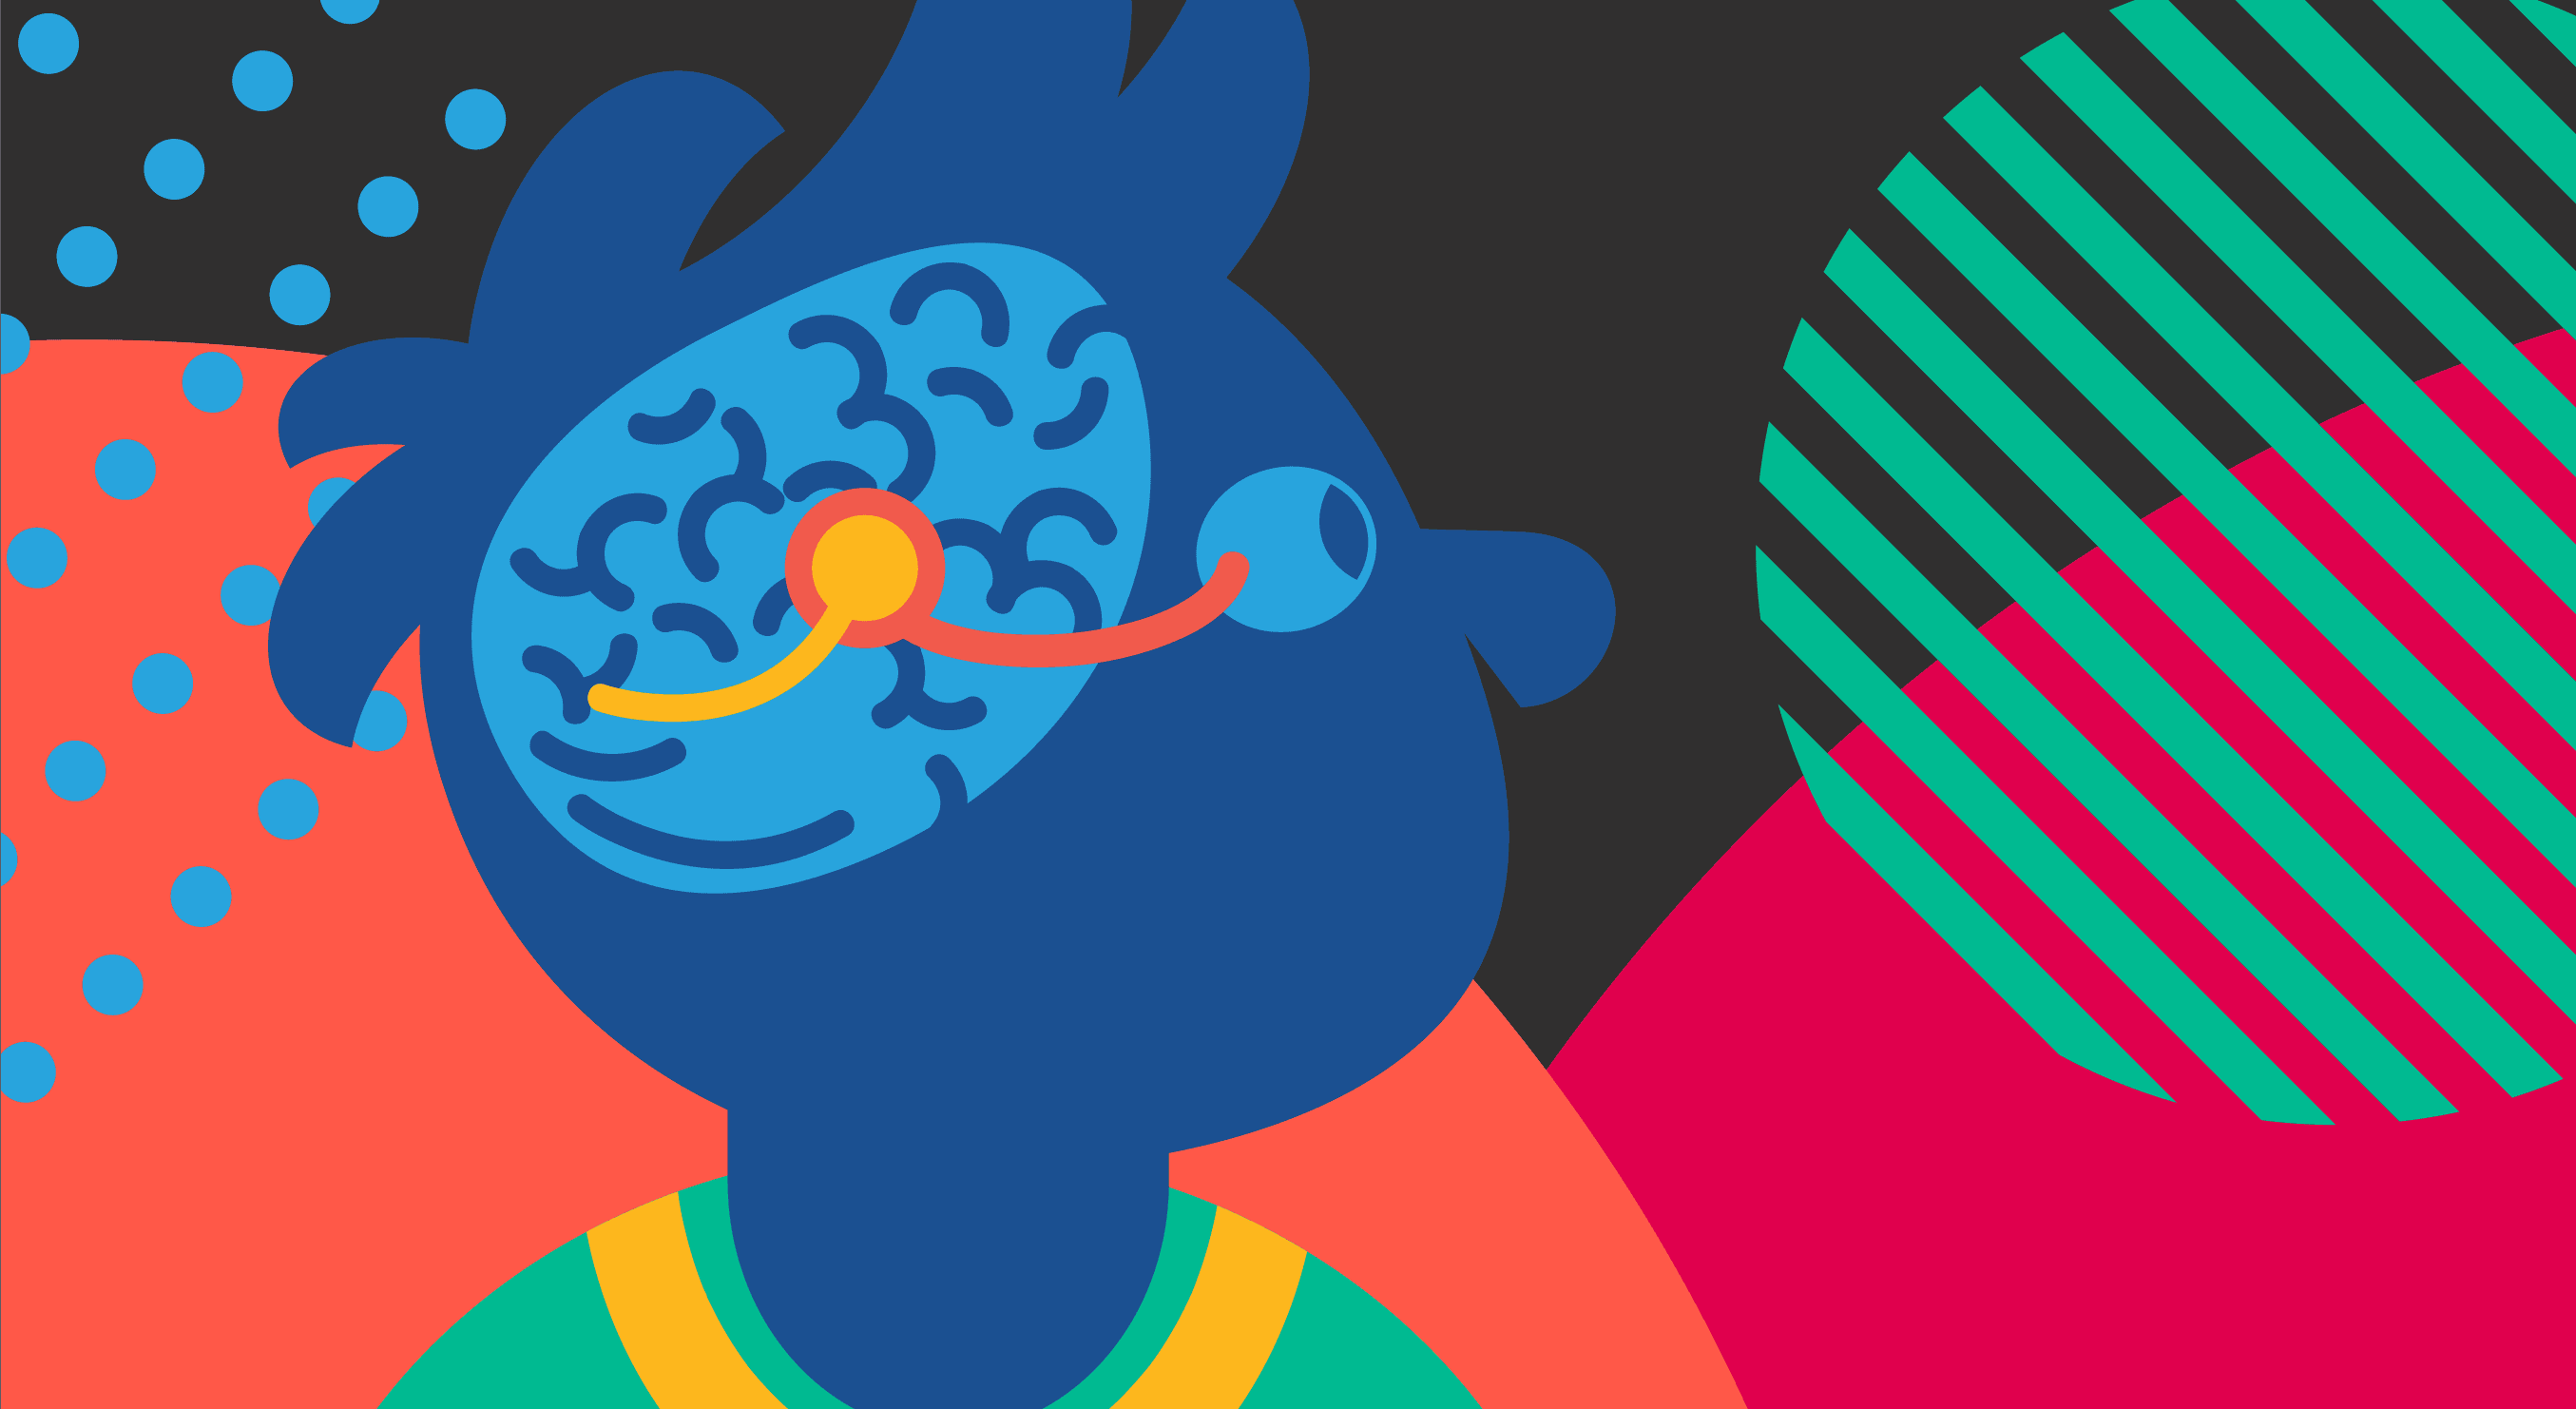 Abstract graphic of child and a brain with an orange line showing the visual pathway from the eye to the back of the brain